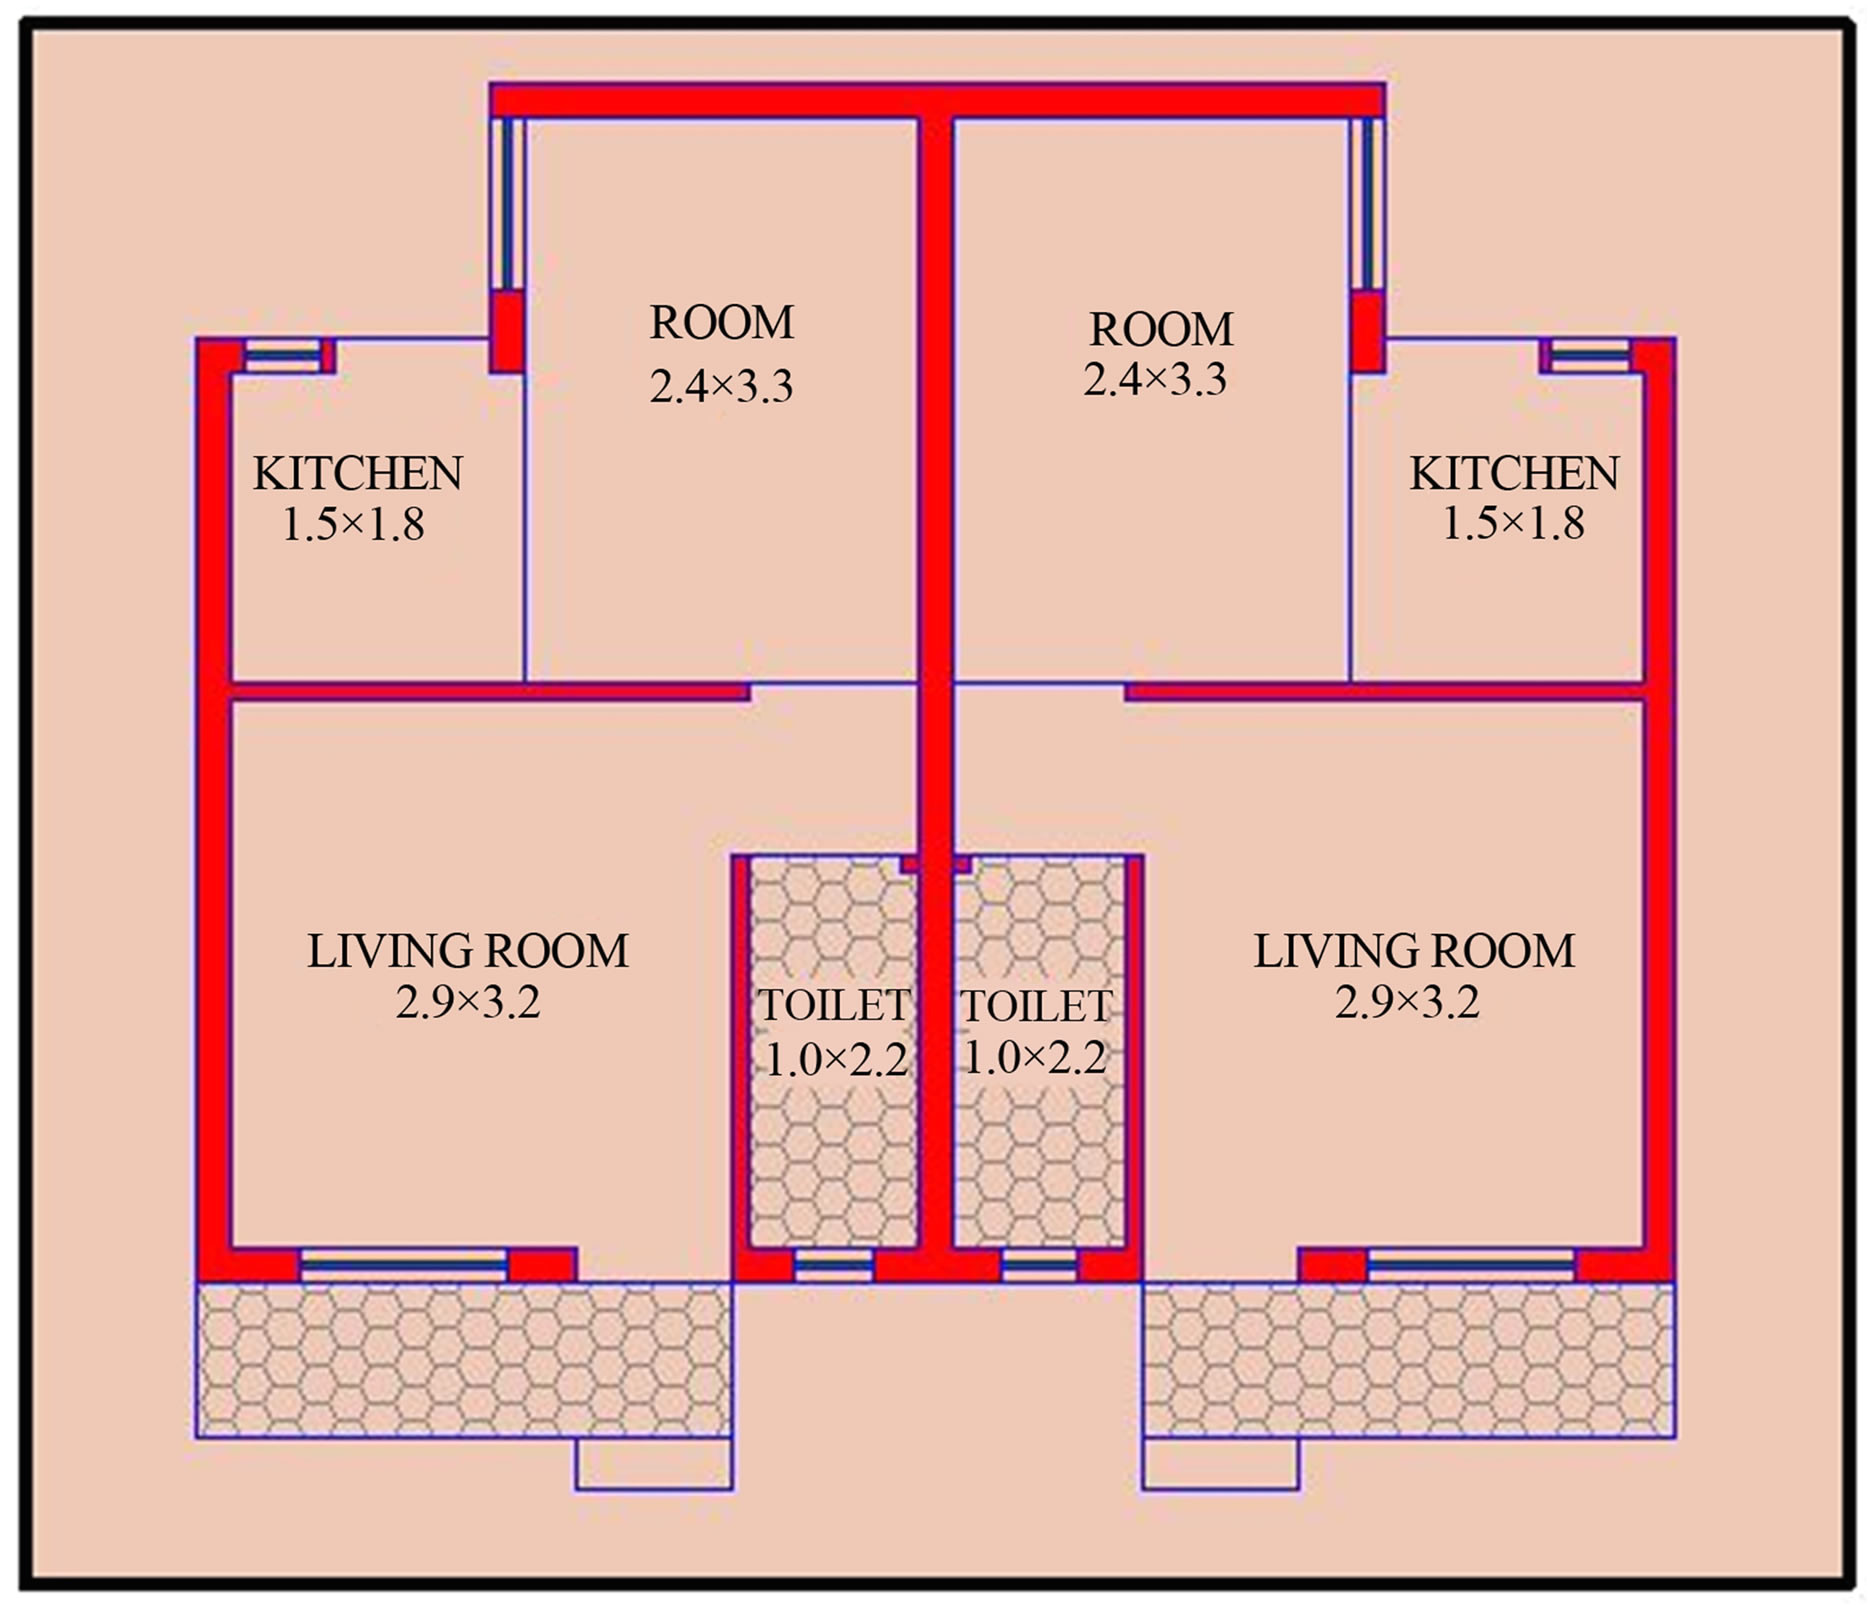 residential building plans in india